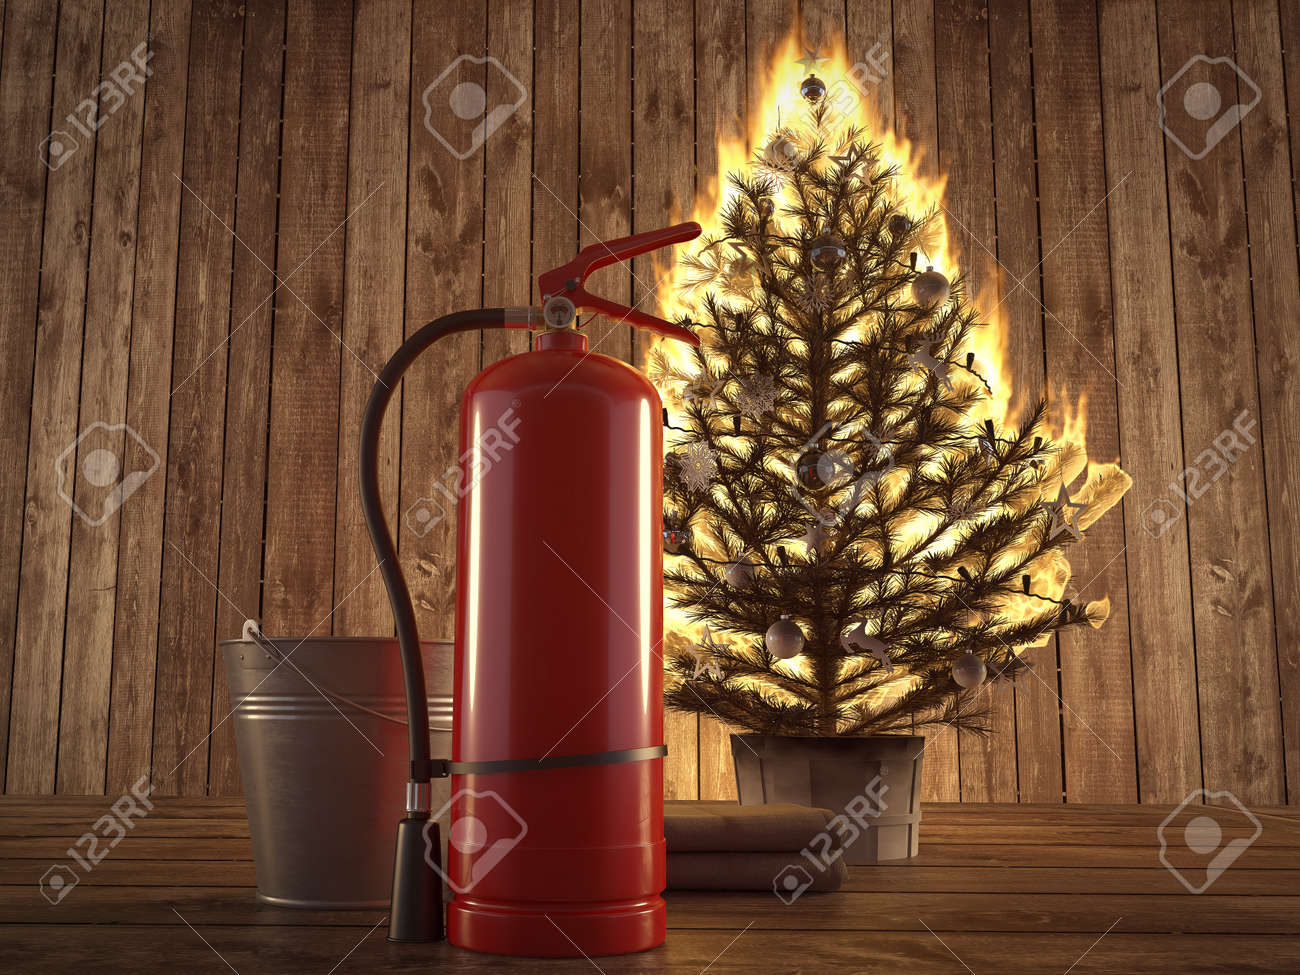 Burning Christmas Tree.3d Rendering Burning Christmas Tree With Fire Extinguisher And